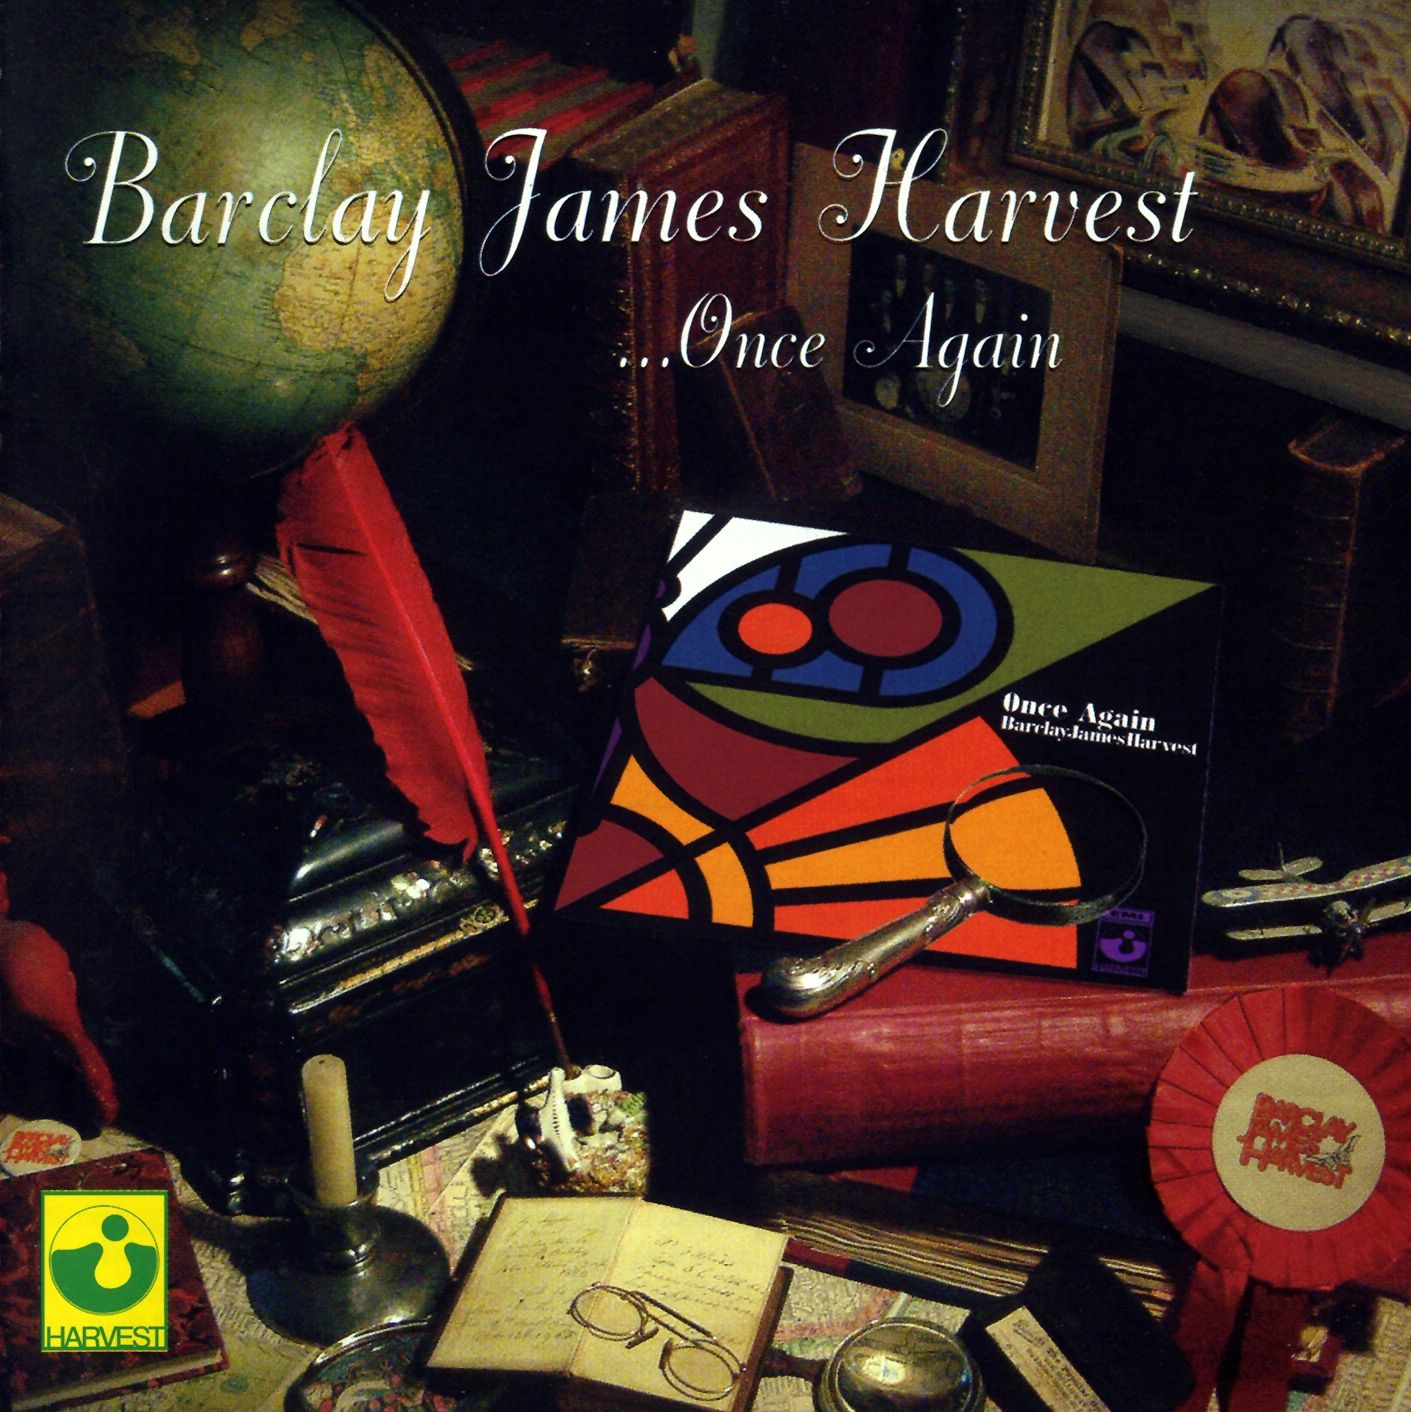 Barclay James Harvest - Selections Taken From The Album